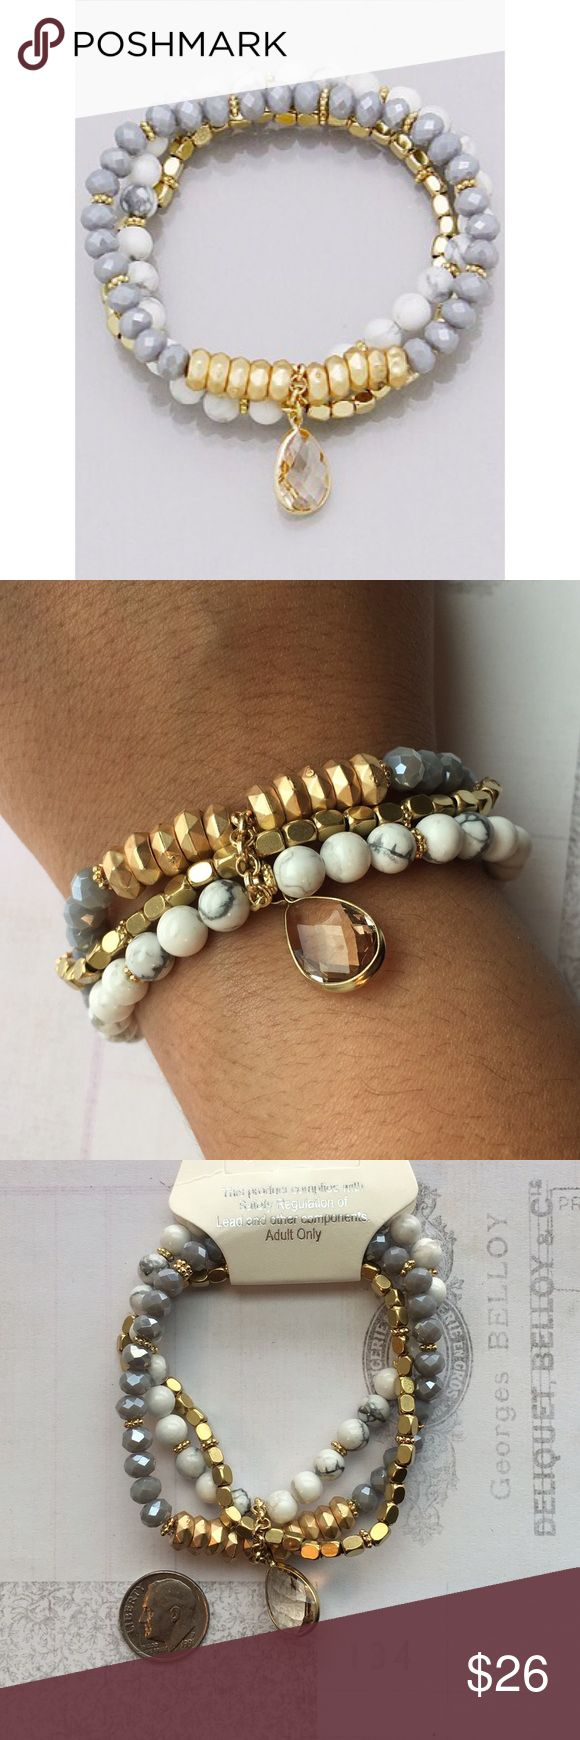 Multi Bead Stacked Stretch Bracelet Brand New Multi Bead Stacked Stretch Bracelet finished with a tear drop semi Precious stone. Nickel and lead free. One size fits most Boutique Jewelry Bracelets